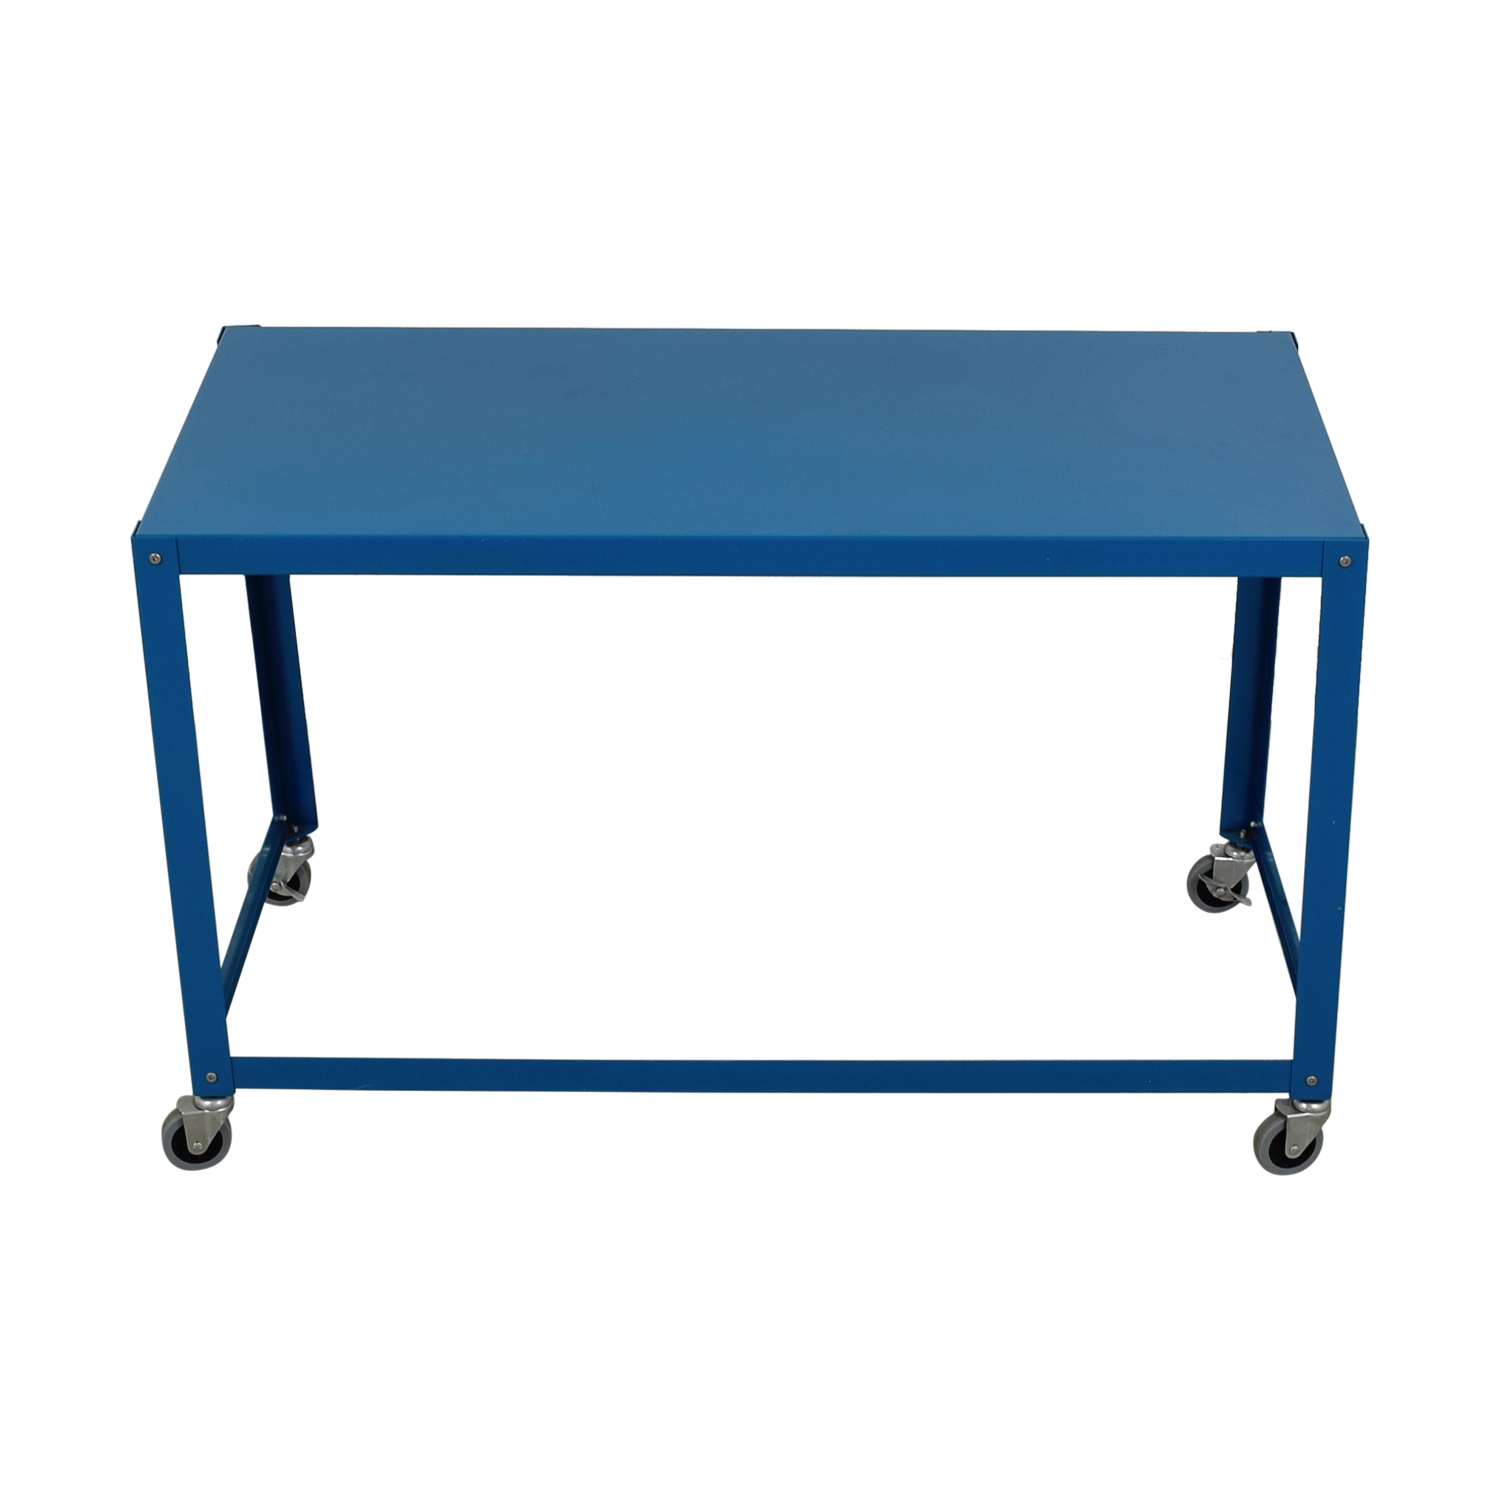 CB2 CB2 Go-Cart Rolling Desk second hand